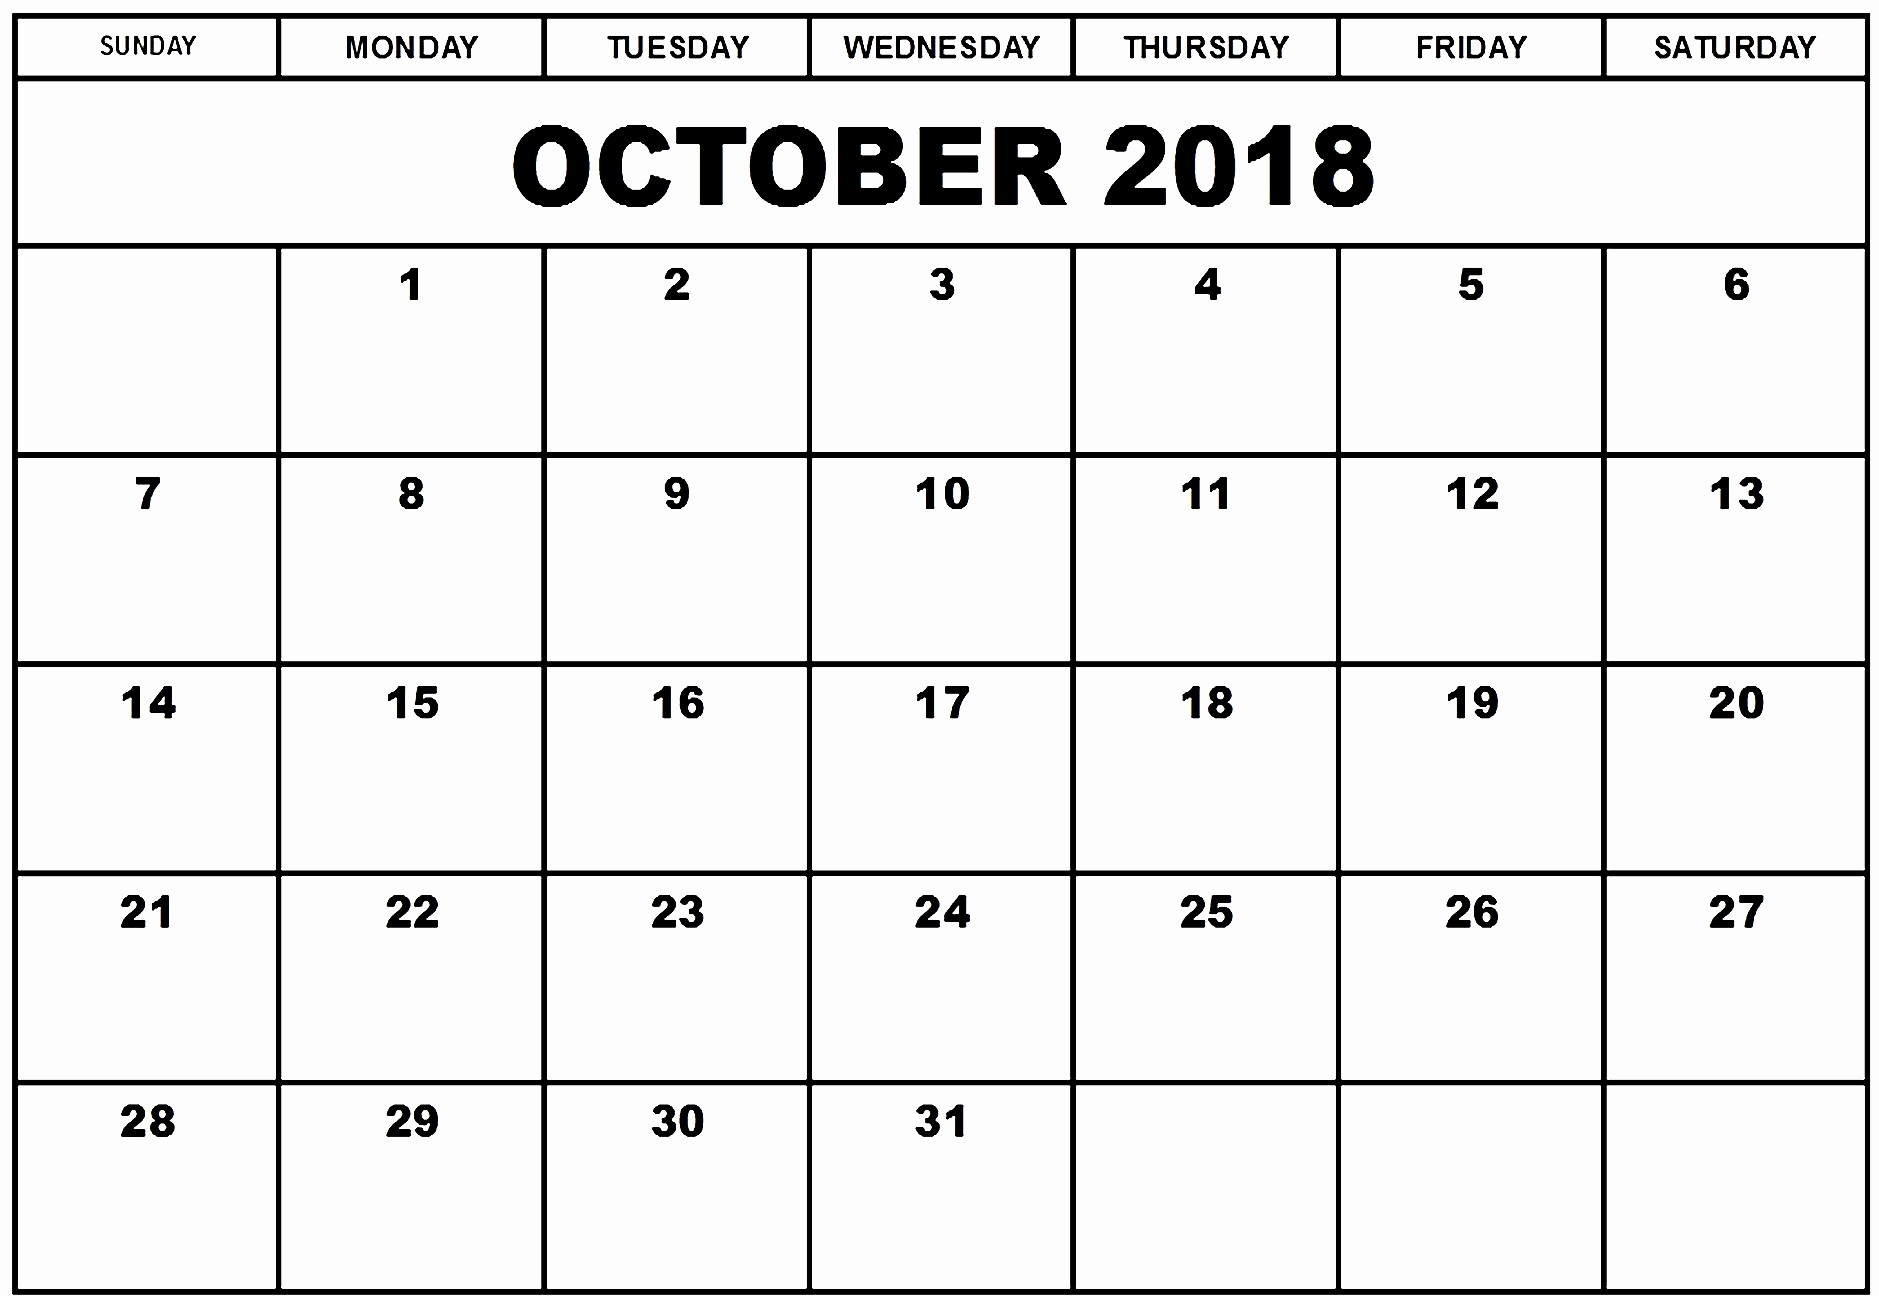 October 2018 Printable Calendar Word Best Of October 2018 Calendar Word